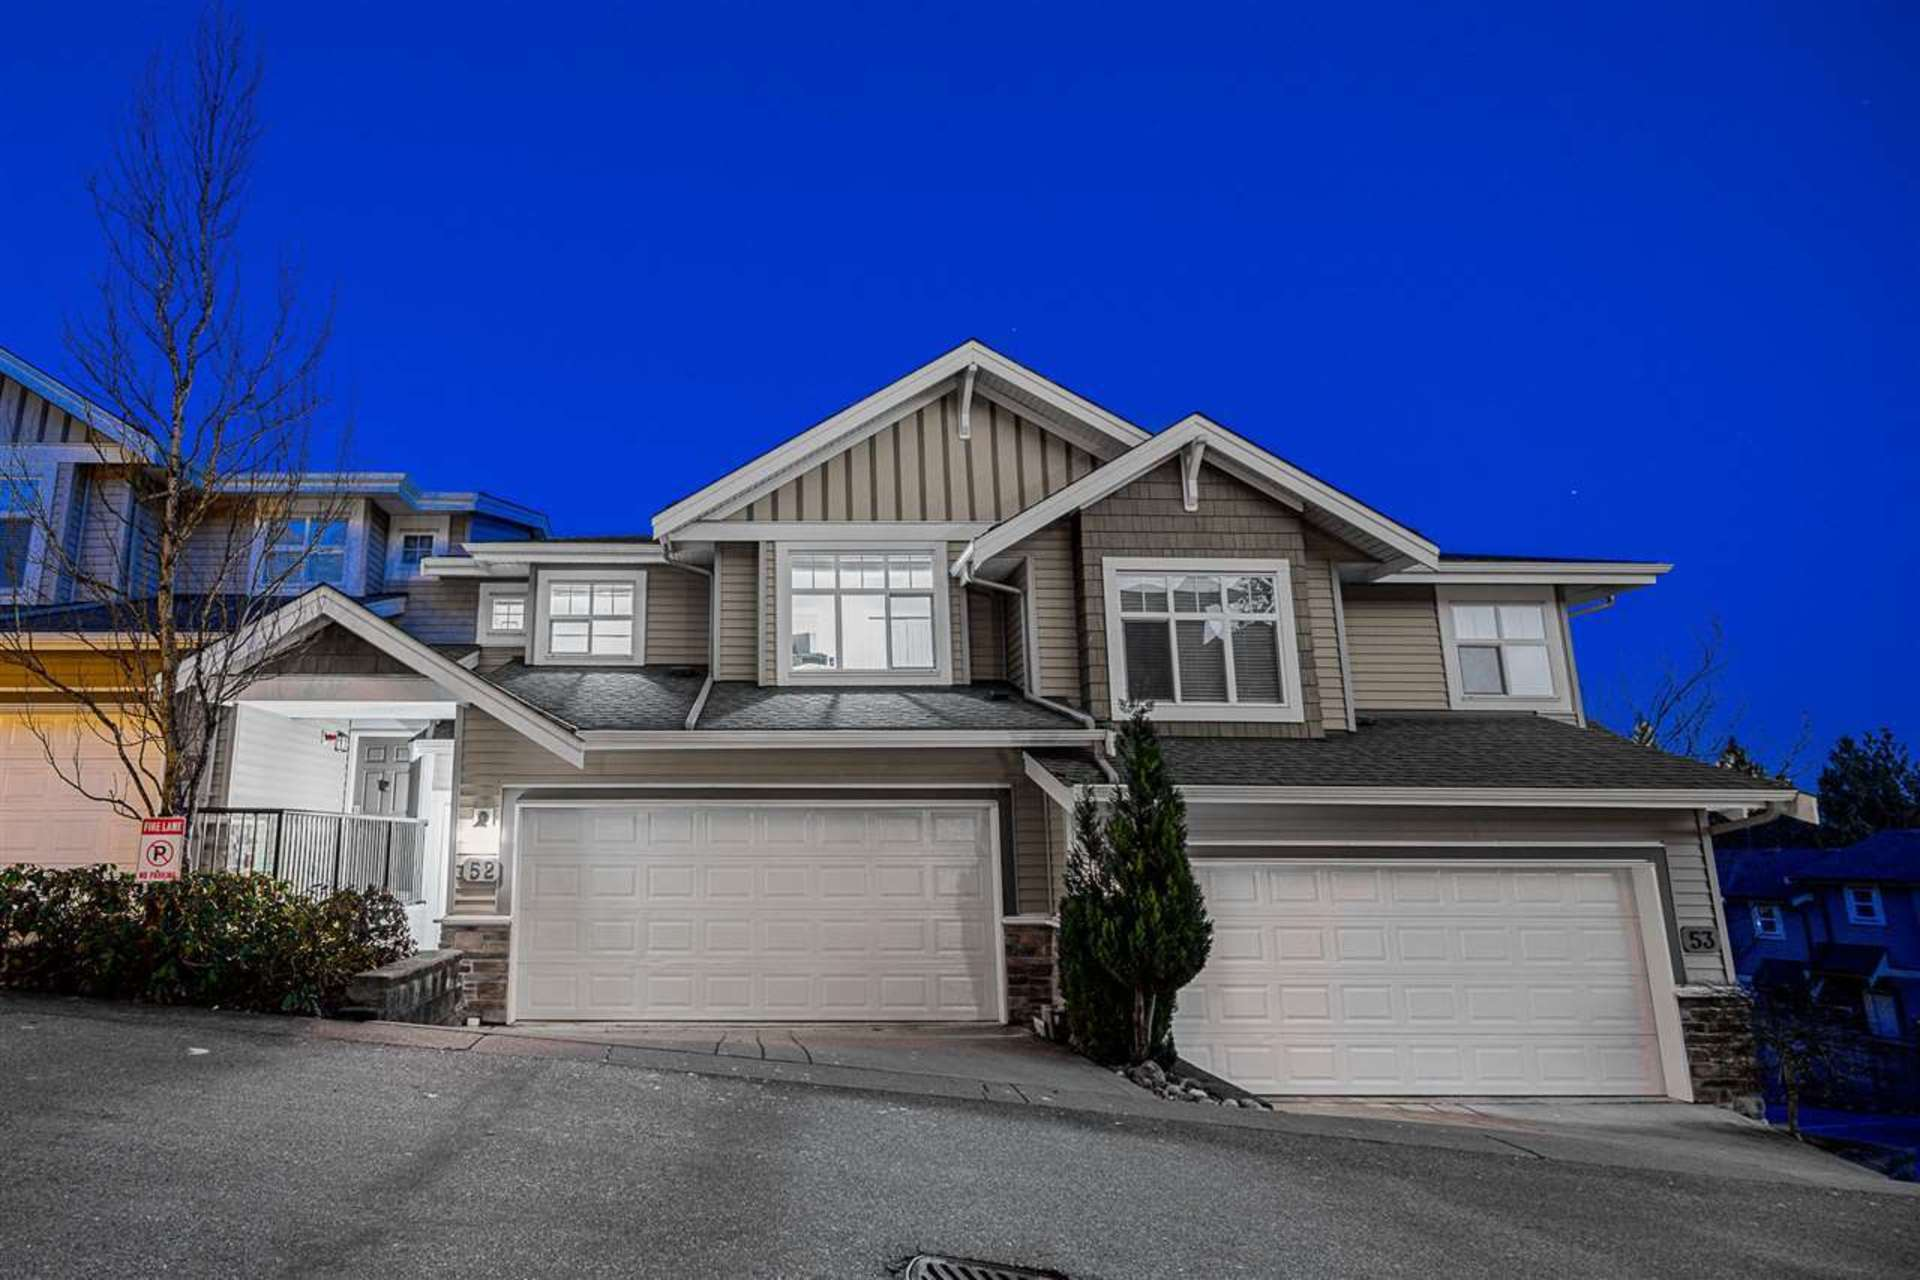 52 - 11282 Cottonwood Drive, Cottonwood MR, Maple Ridge